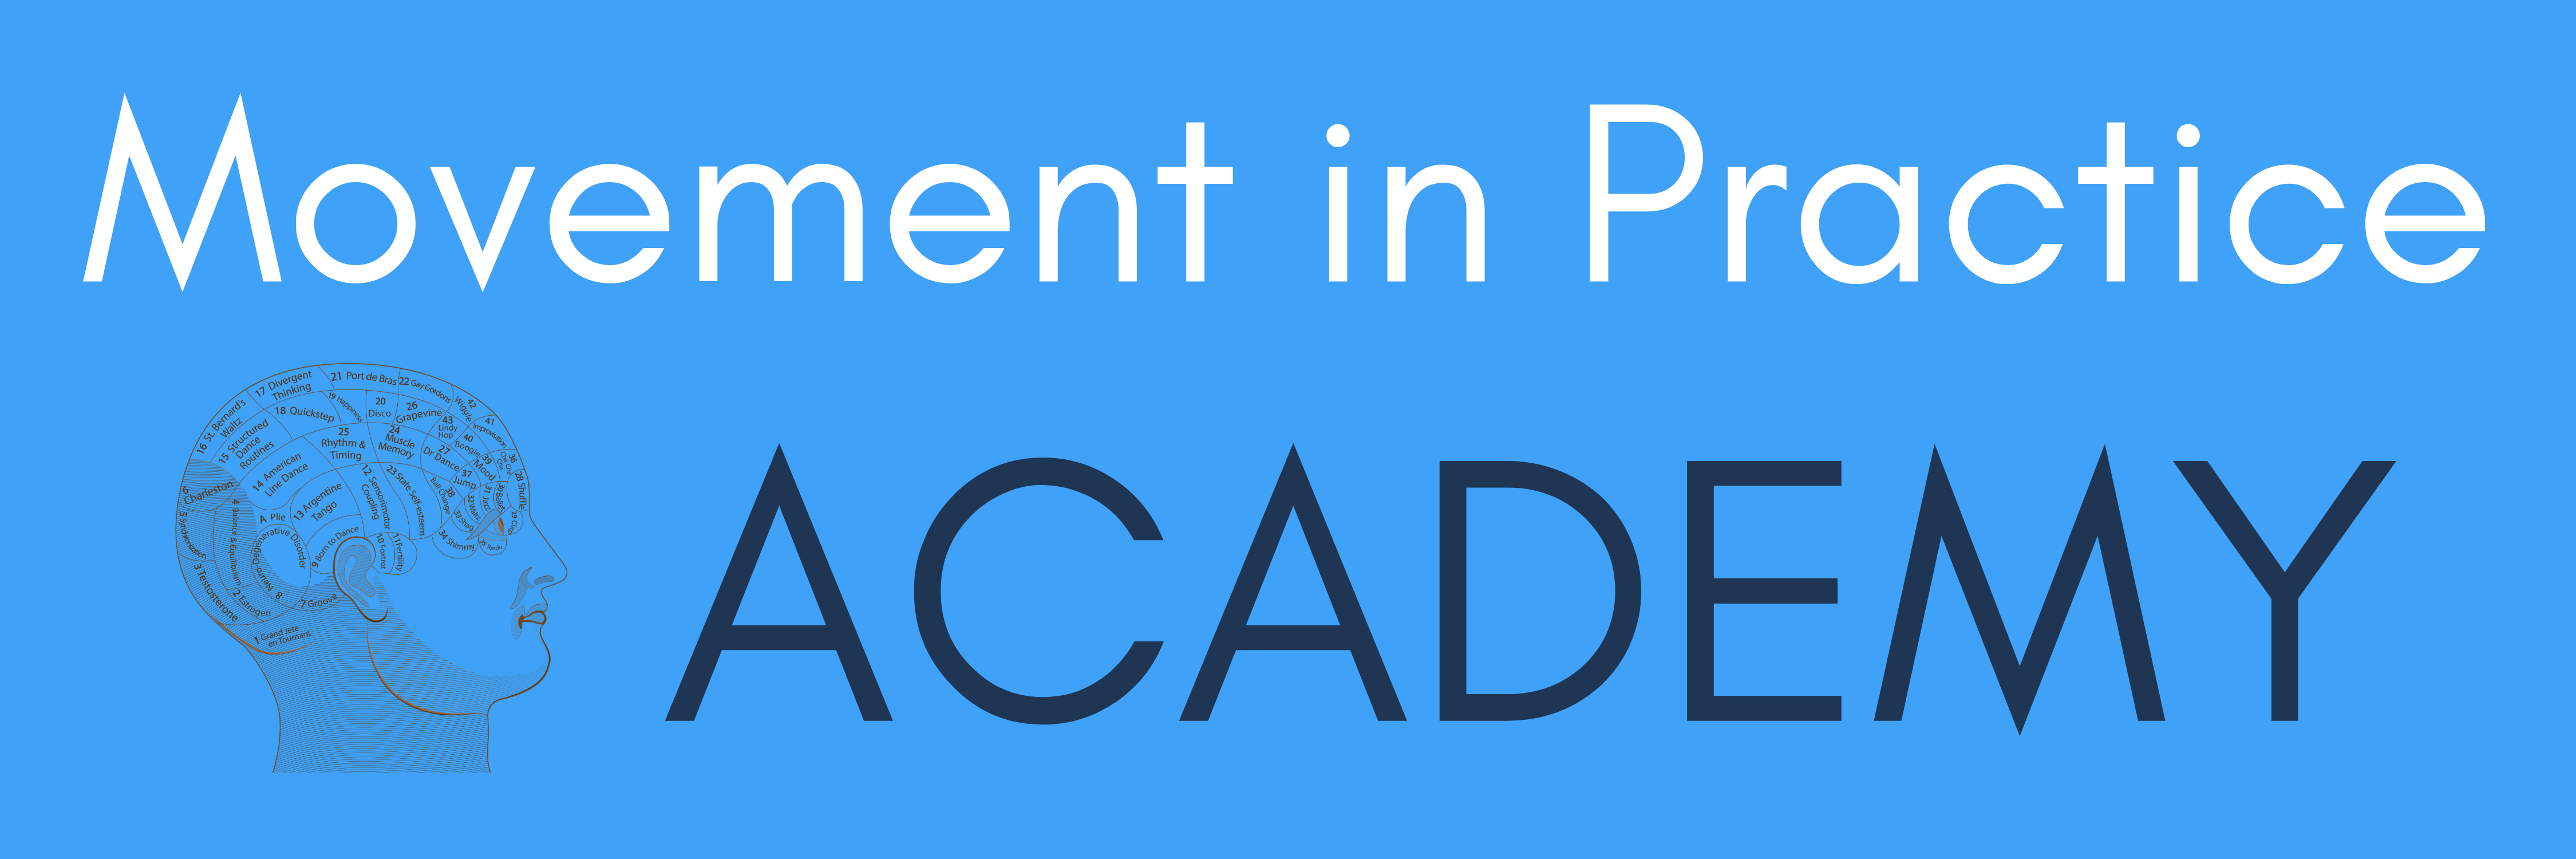 Movement in Practice Academy